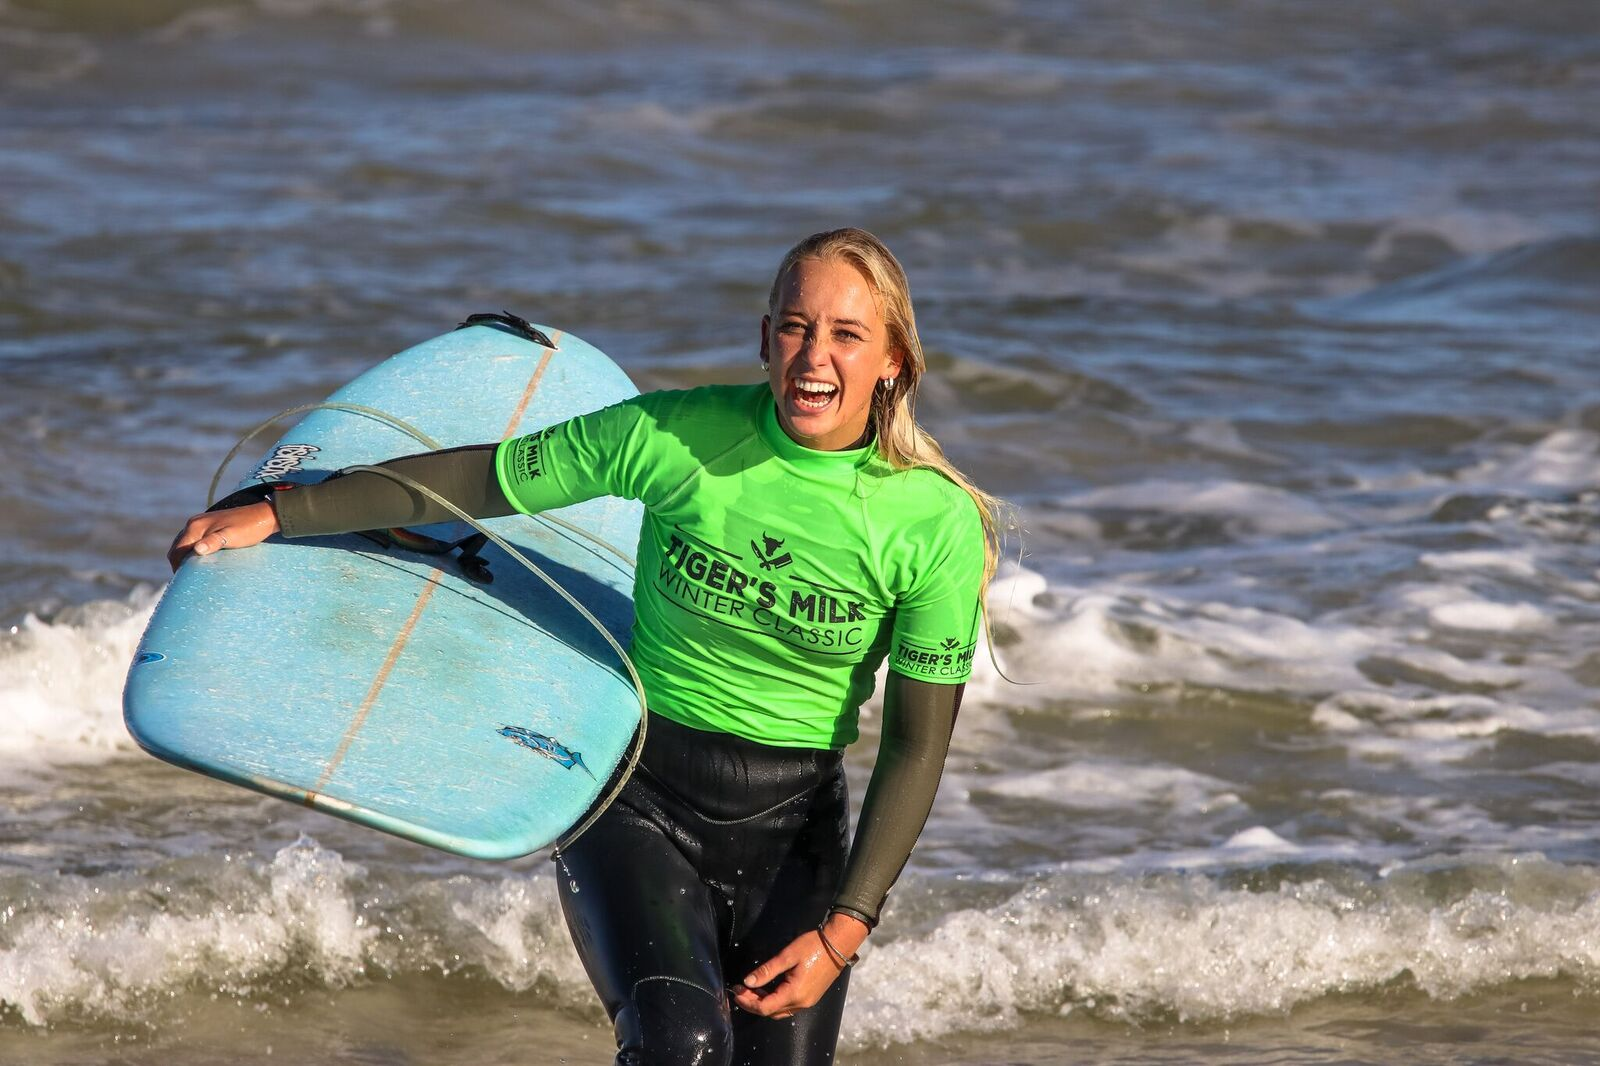 Tigers Milk Classic_Ian Thurtell_WSL Womens winner_ Crystal Hullett_preview-01